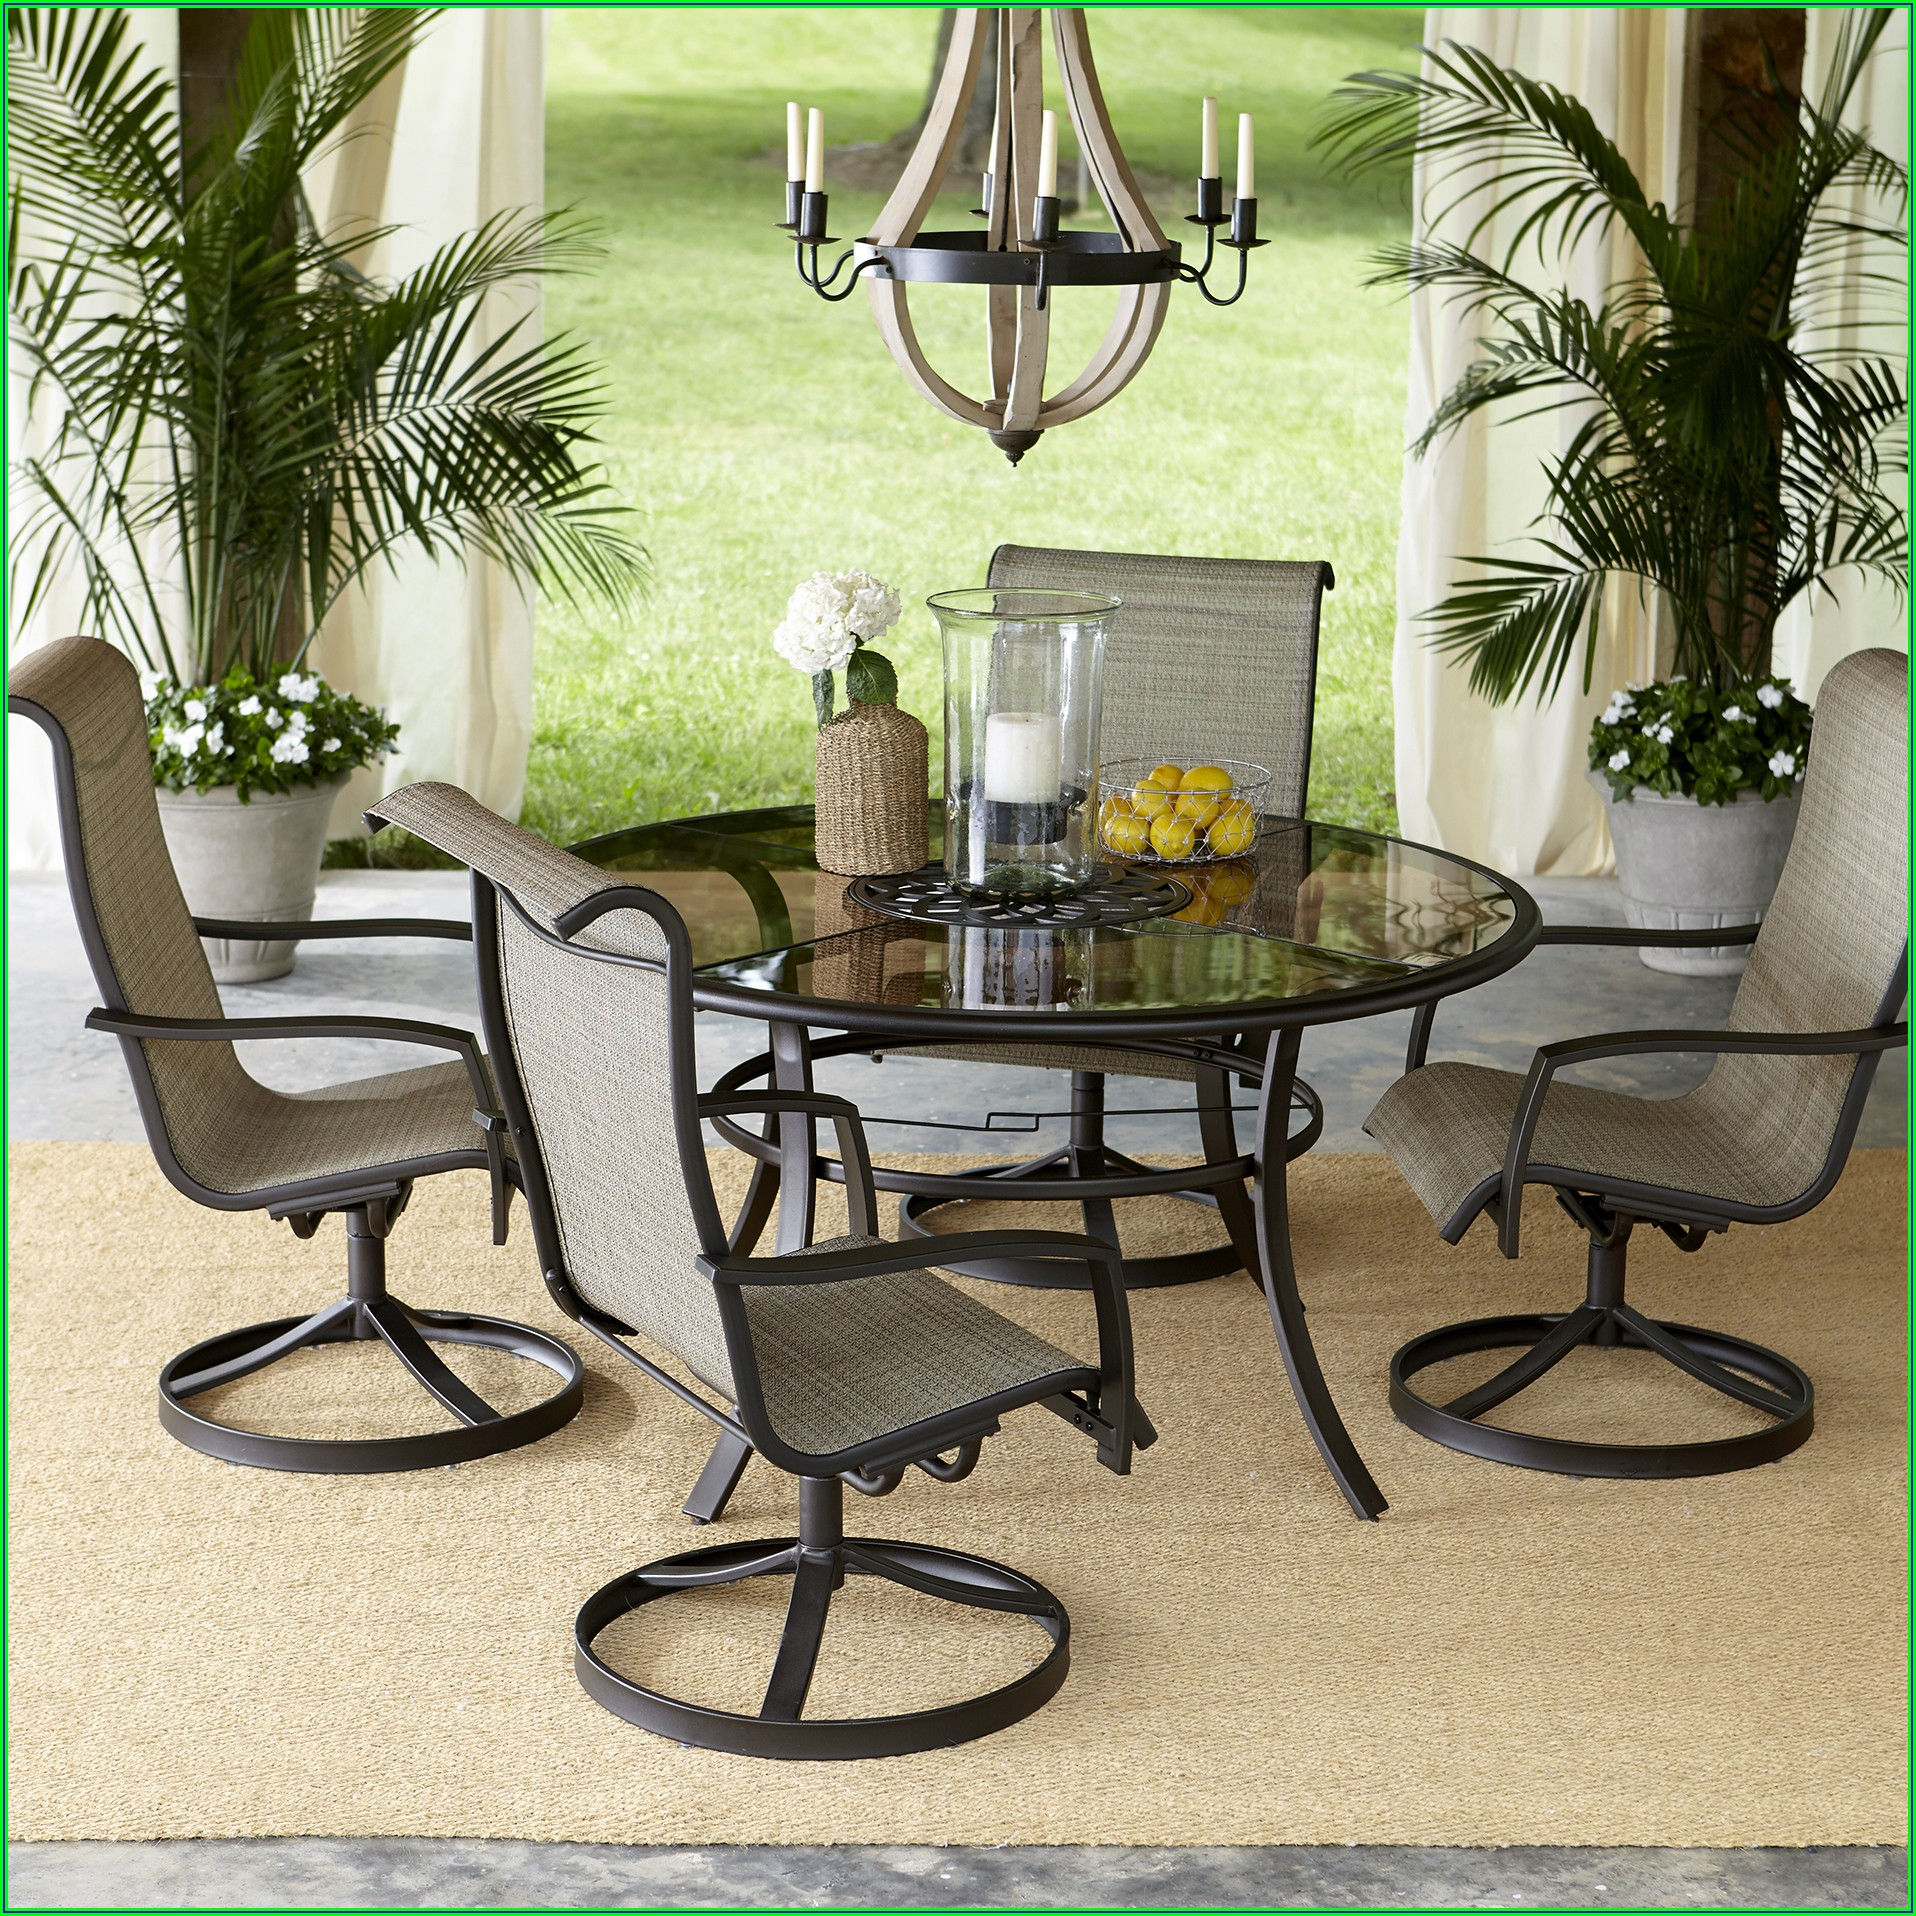 5 Piece Patio Set With Swivel Chairs